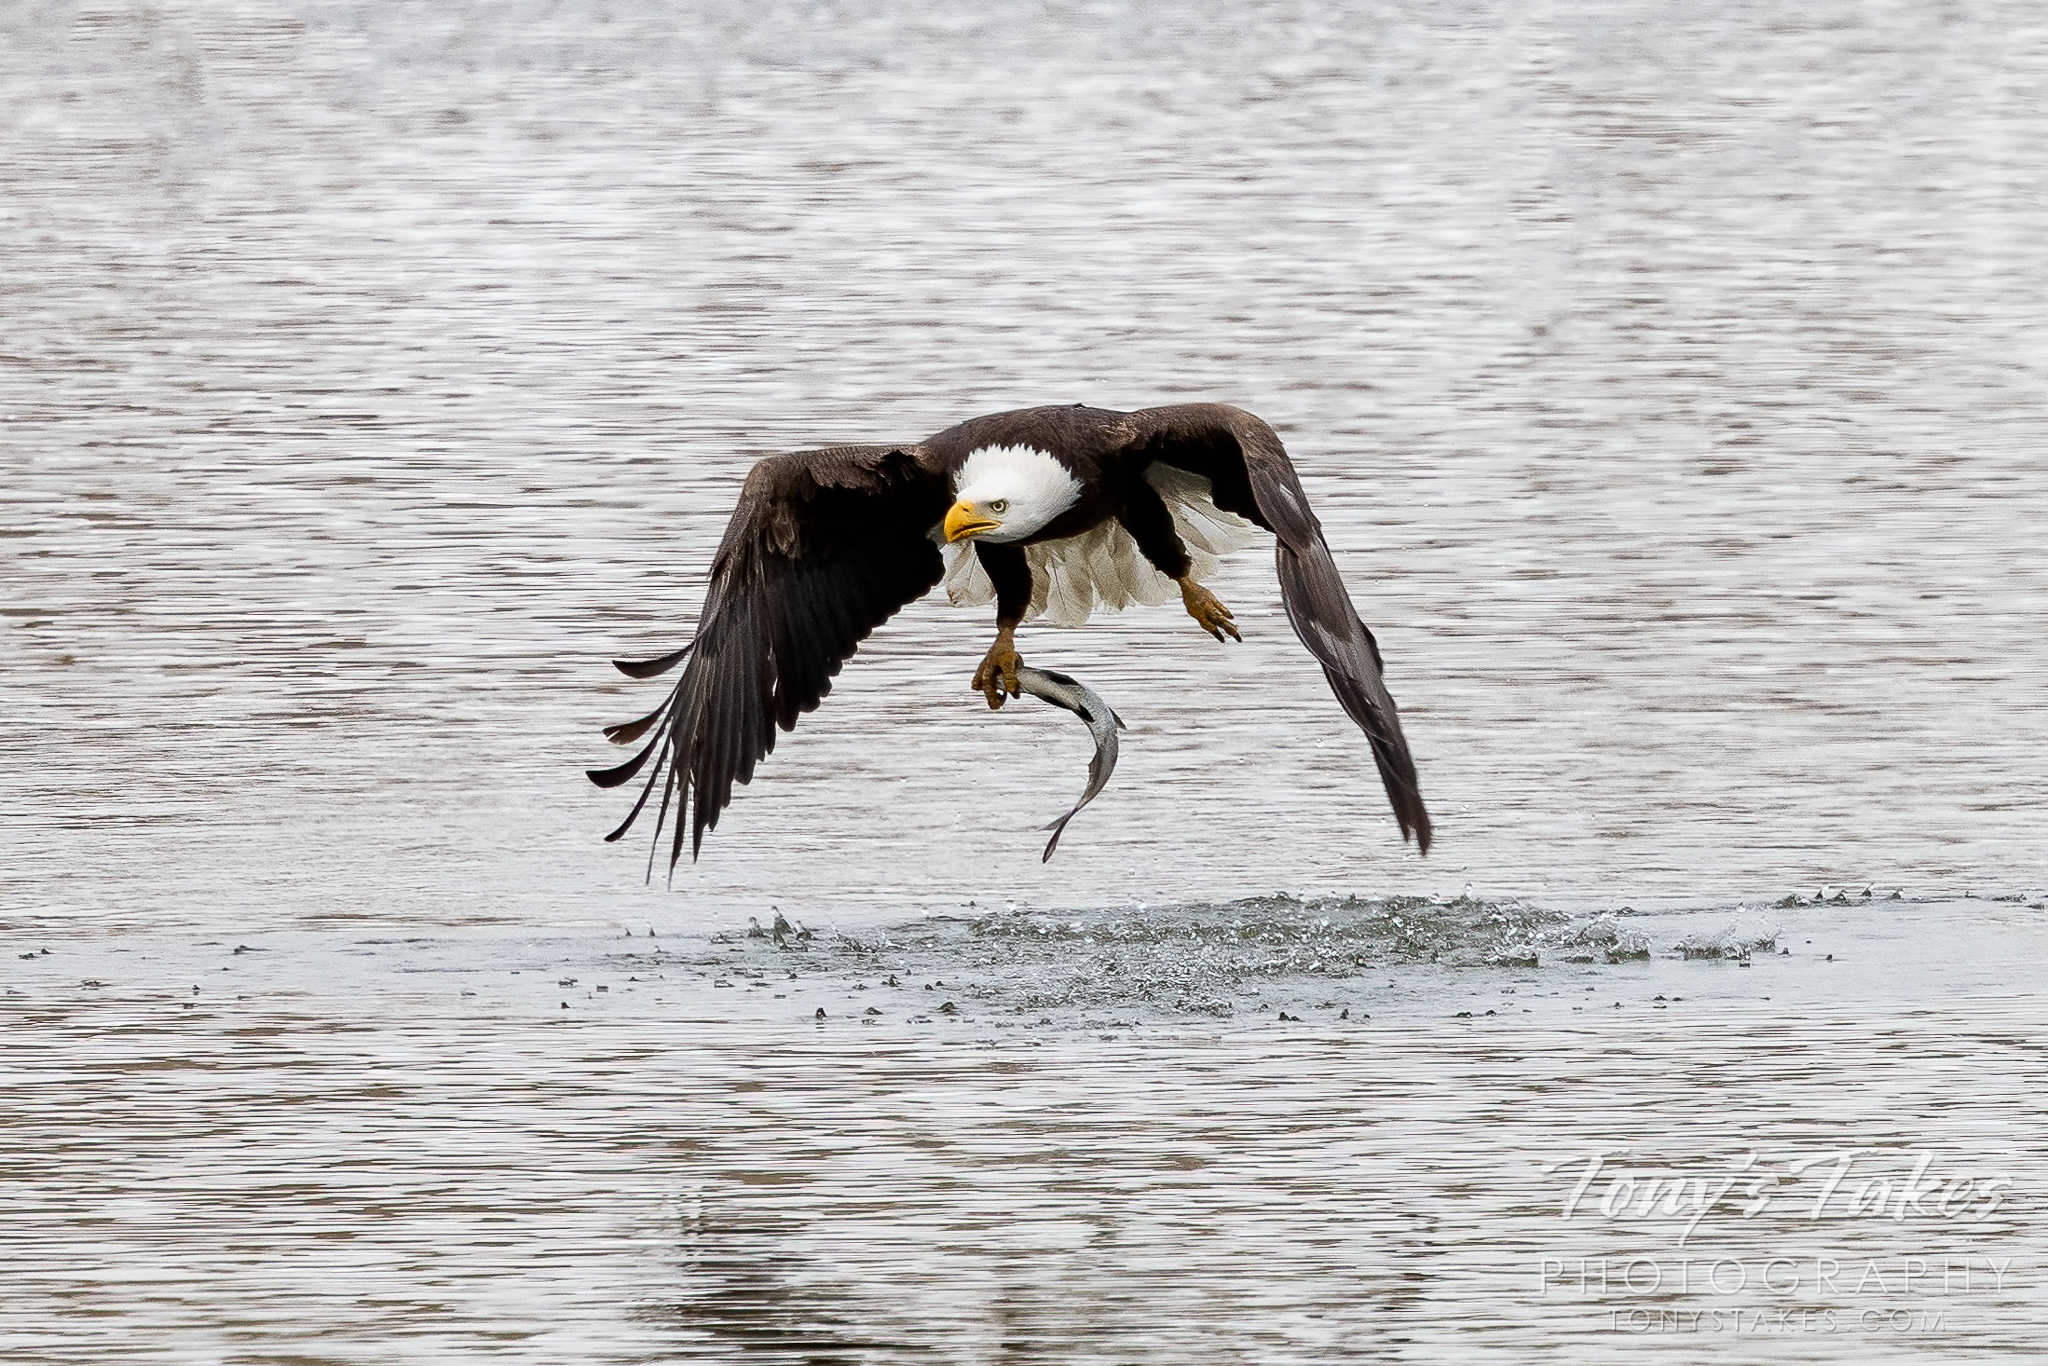 Bald eagle nails the catch